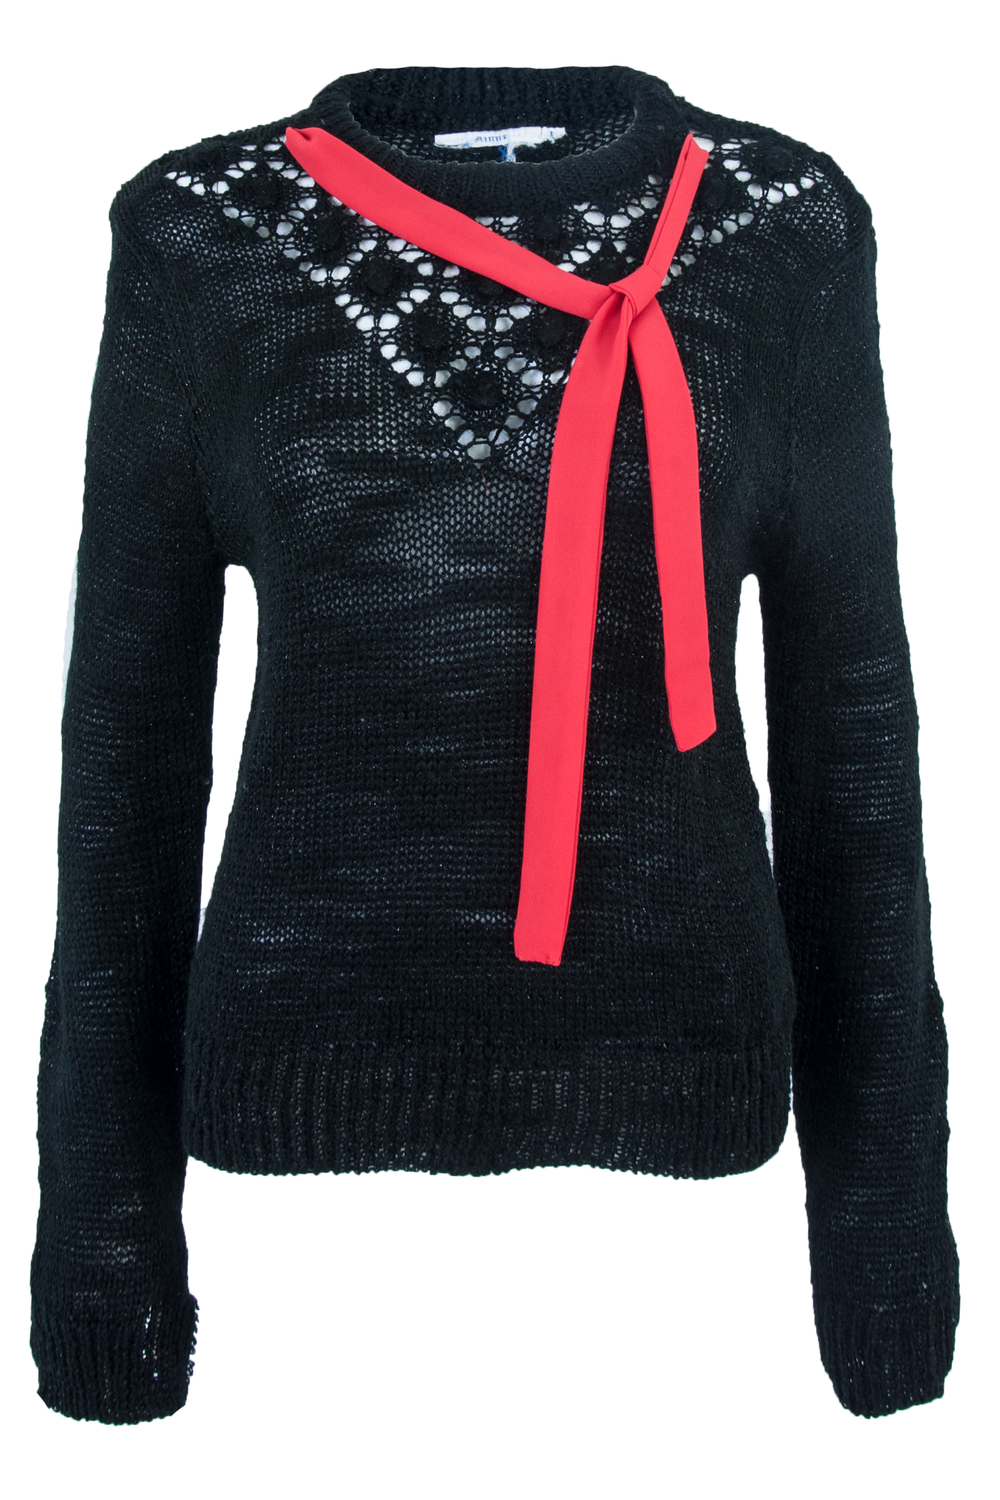 Black sweater with red ribbon tie at neckline